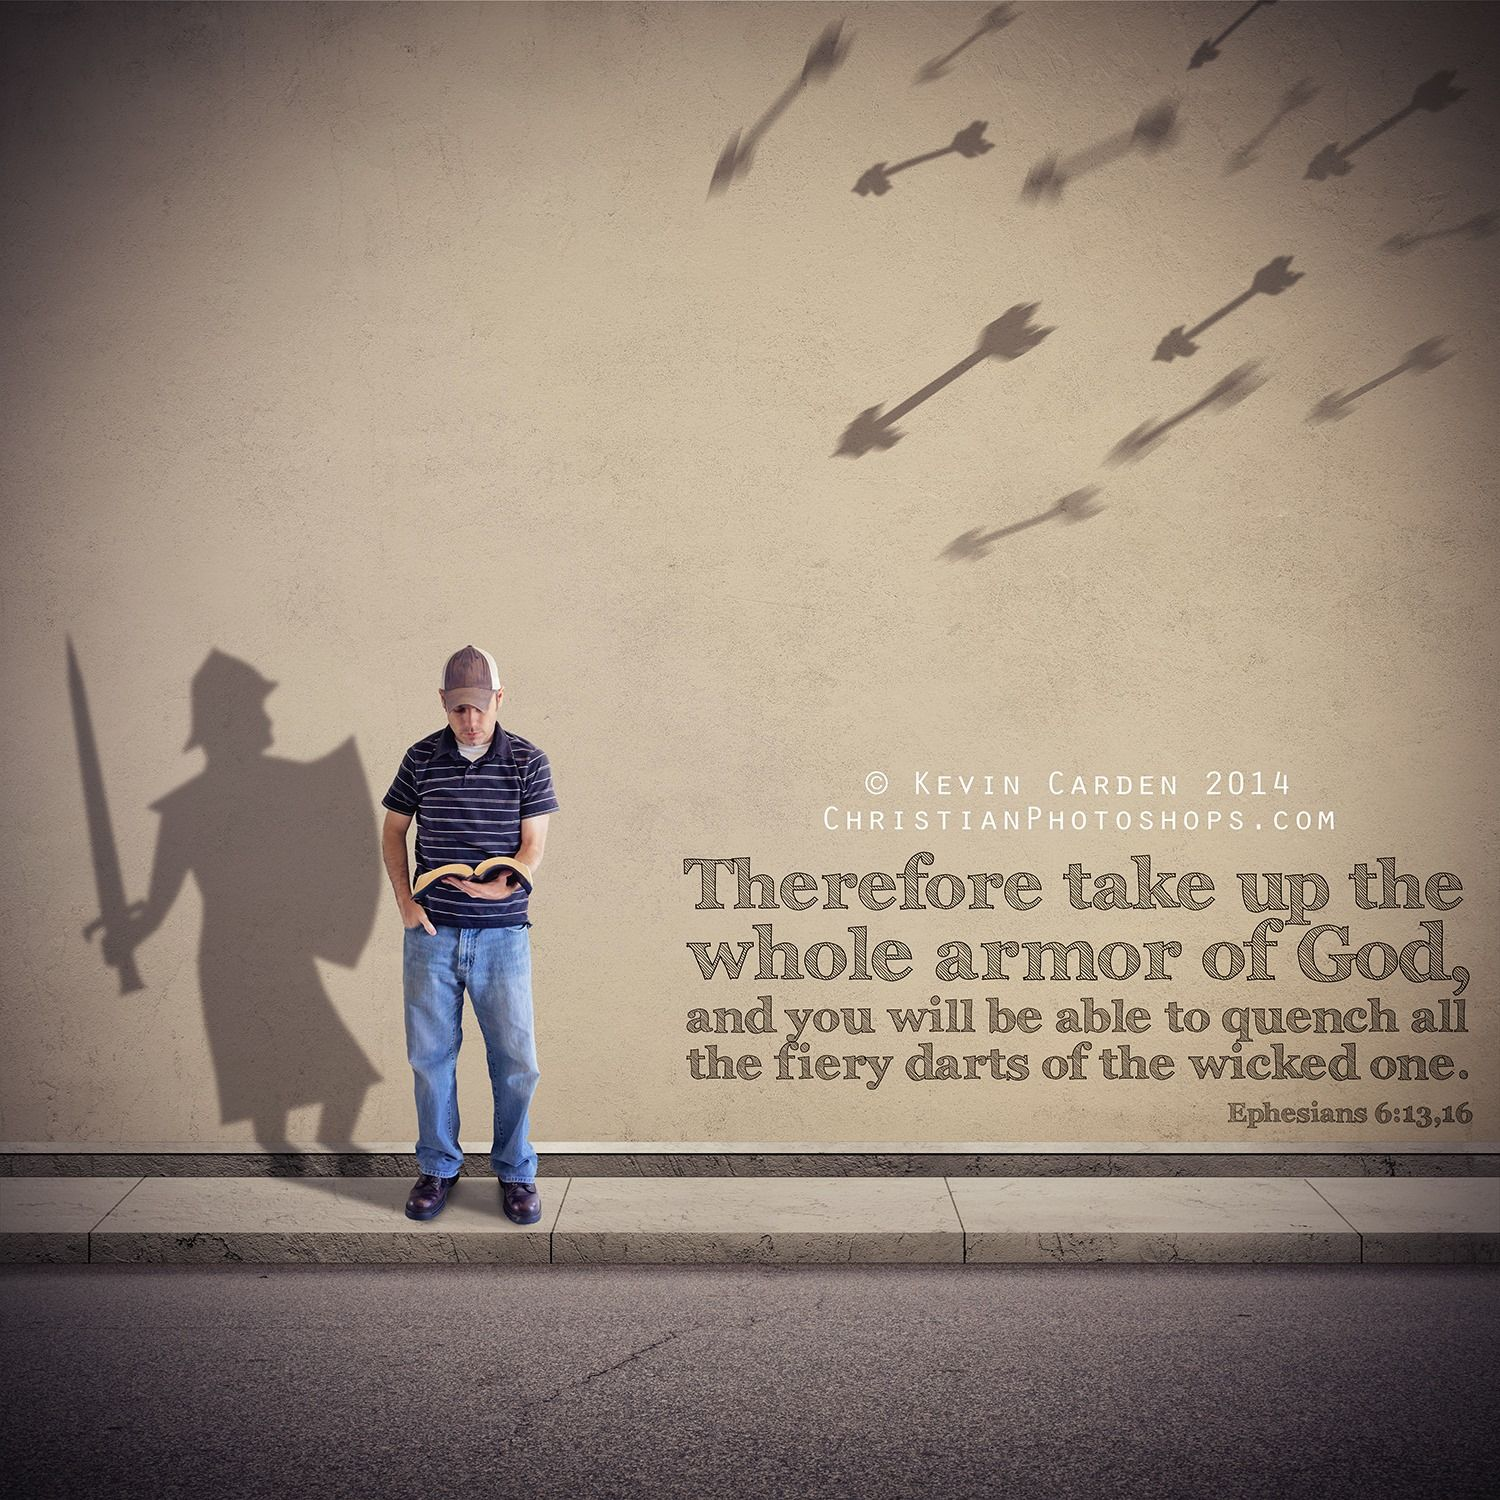 Ephesians 6:13 & 16 - 13 Therefore take up the whole armor ...